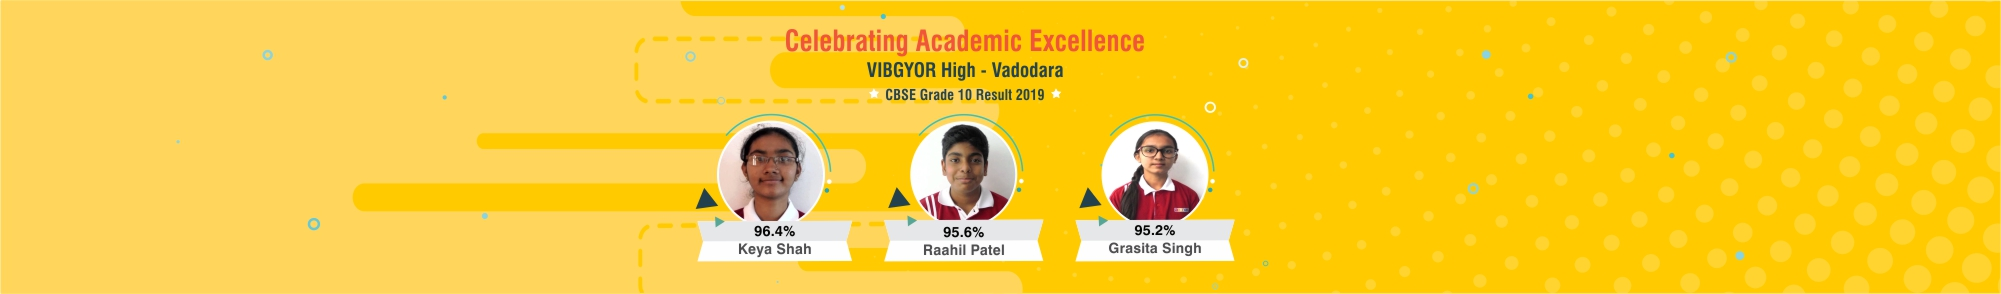 VIBGYOR High vadodara Residential school